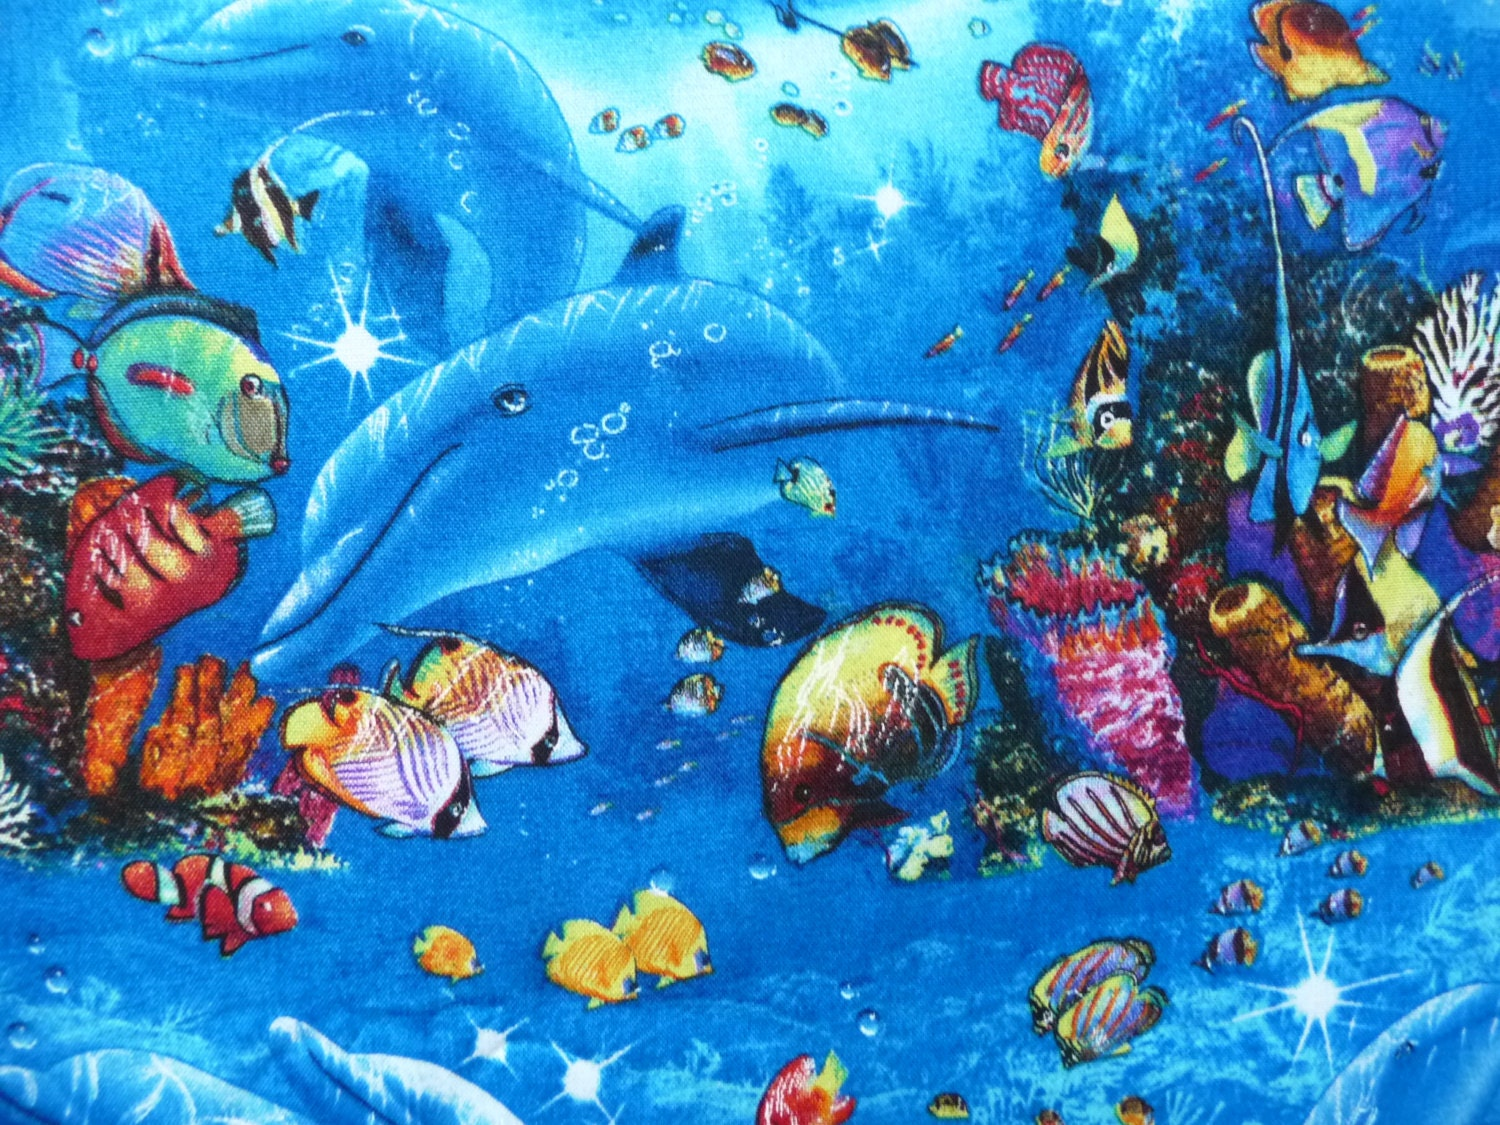 Tropical fish fabric children of the sea elizabeths studio for Children of the sea fabric